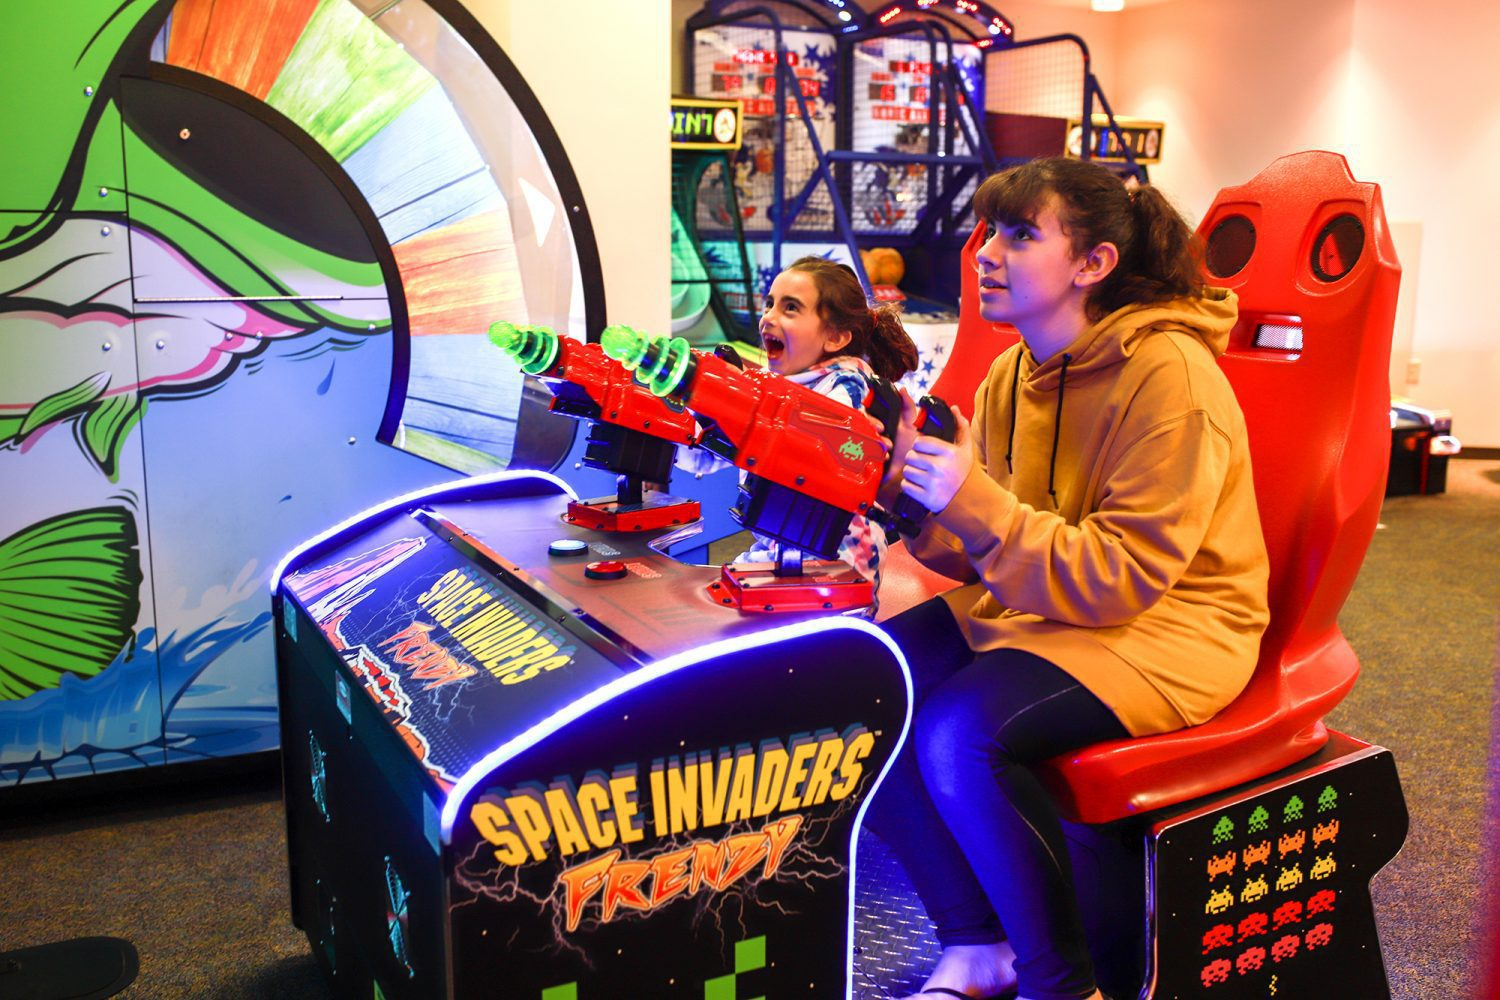 Two girls playing a game at an arcade